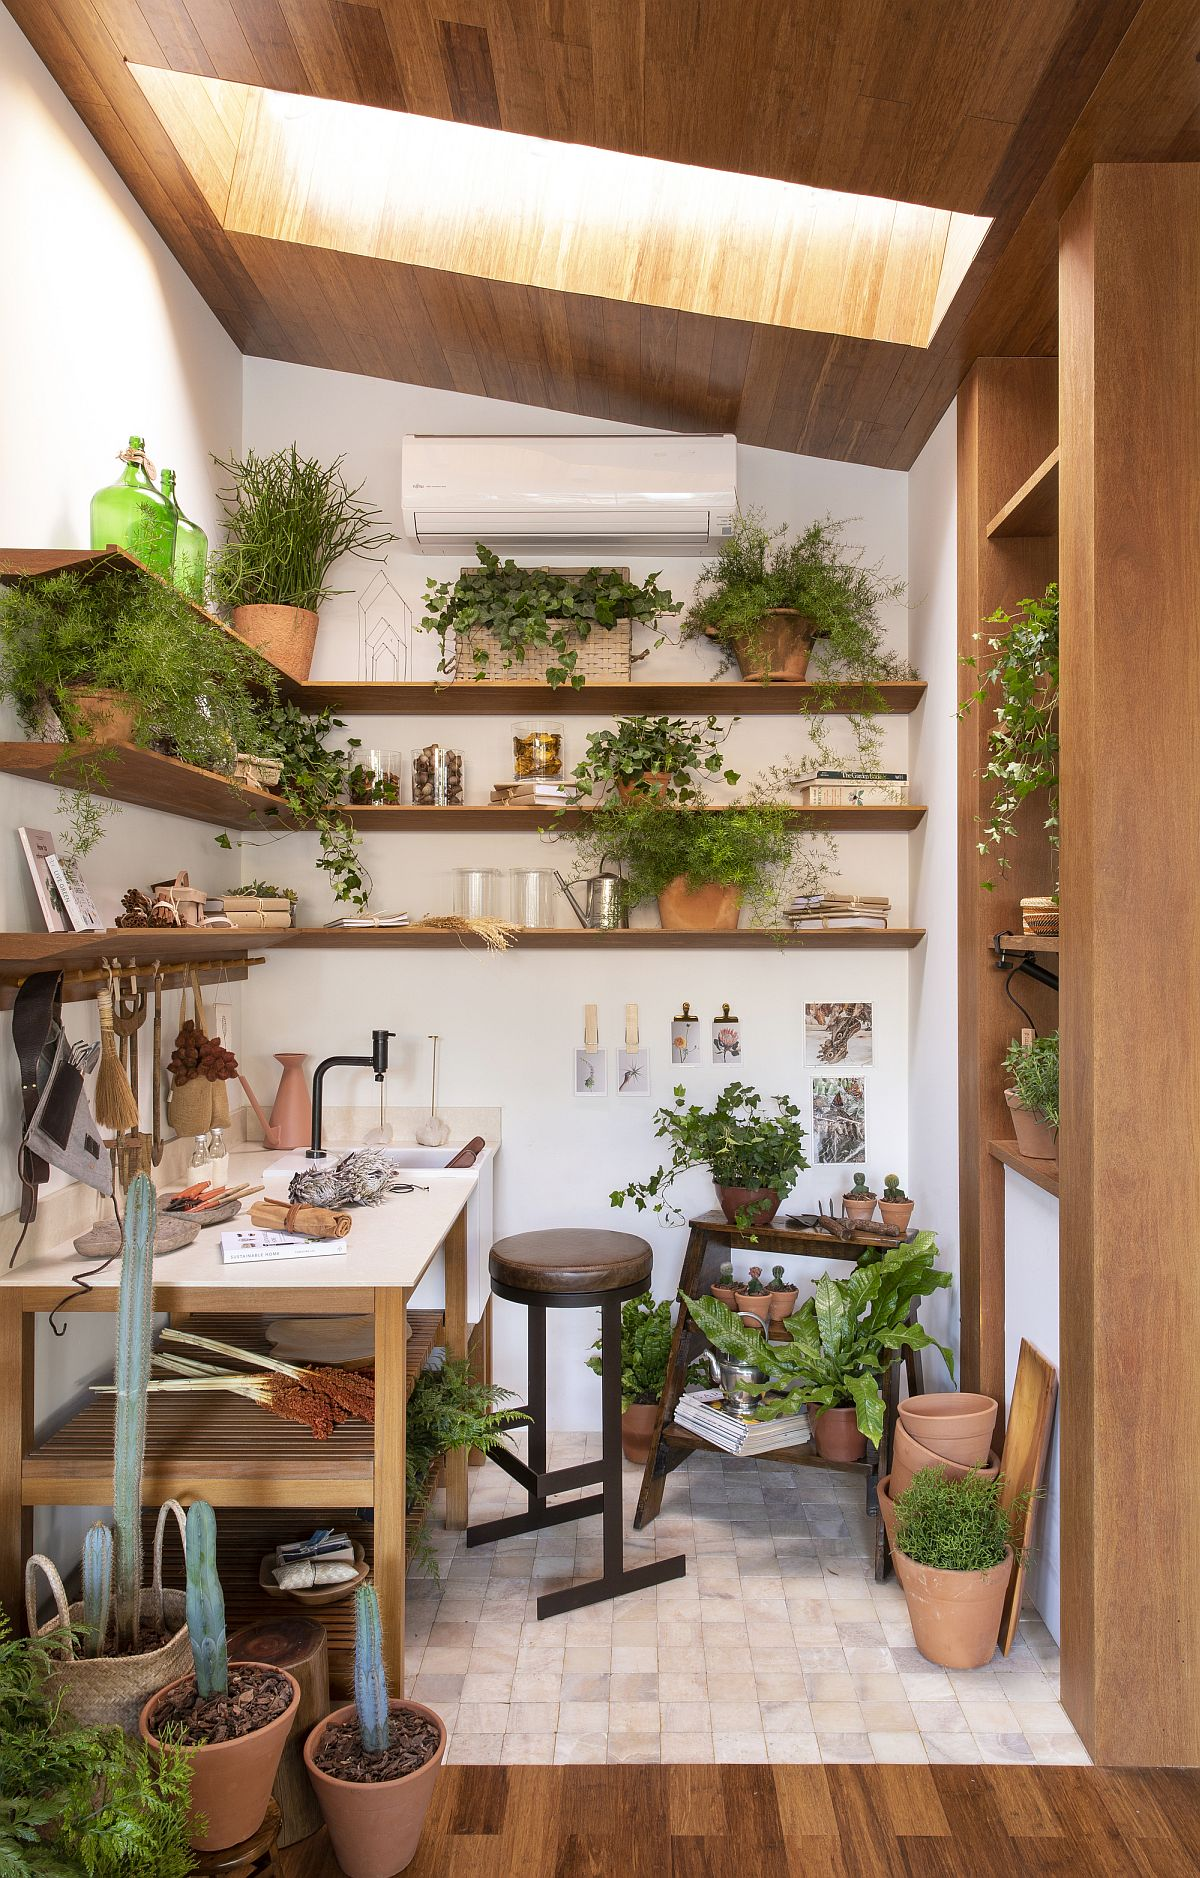 Skylight brings natural light into this small crafting room full of greenery